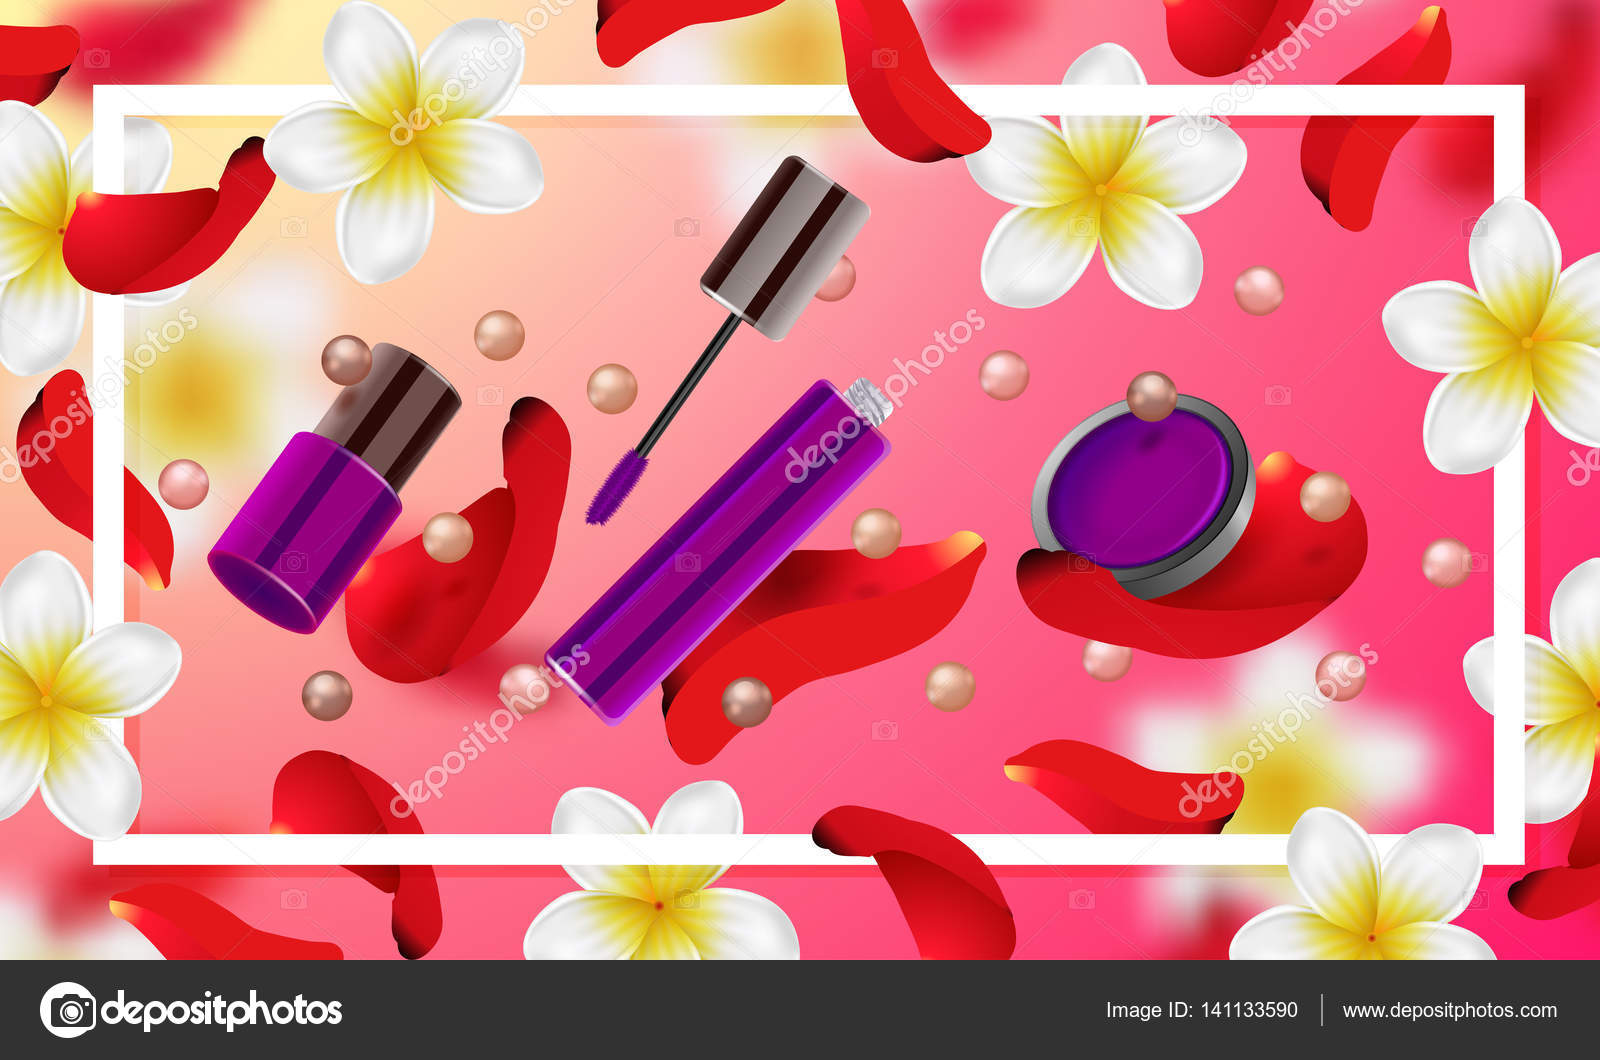 3dae3b2d137e1 Decorative cosmetics make up accessories beauty store. Summer or spring  background with tropical flowers and rose petals– stock illustration